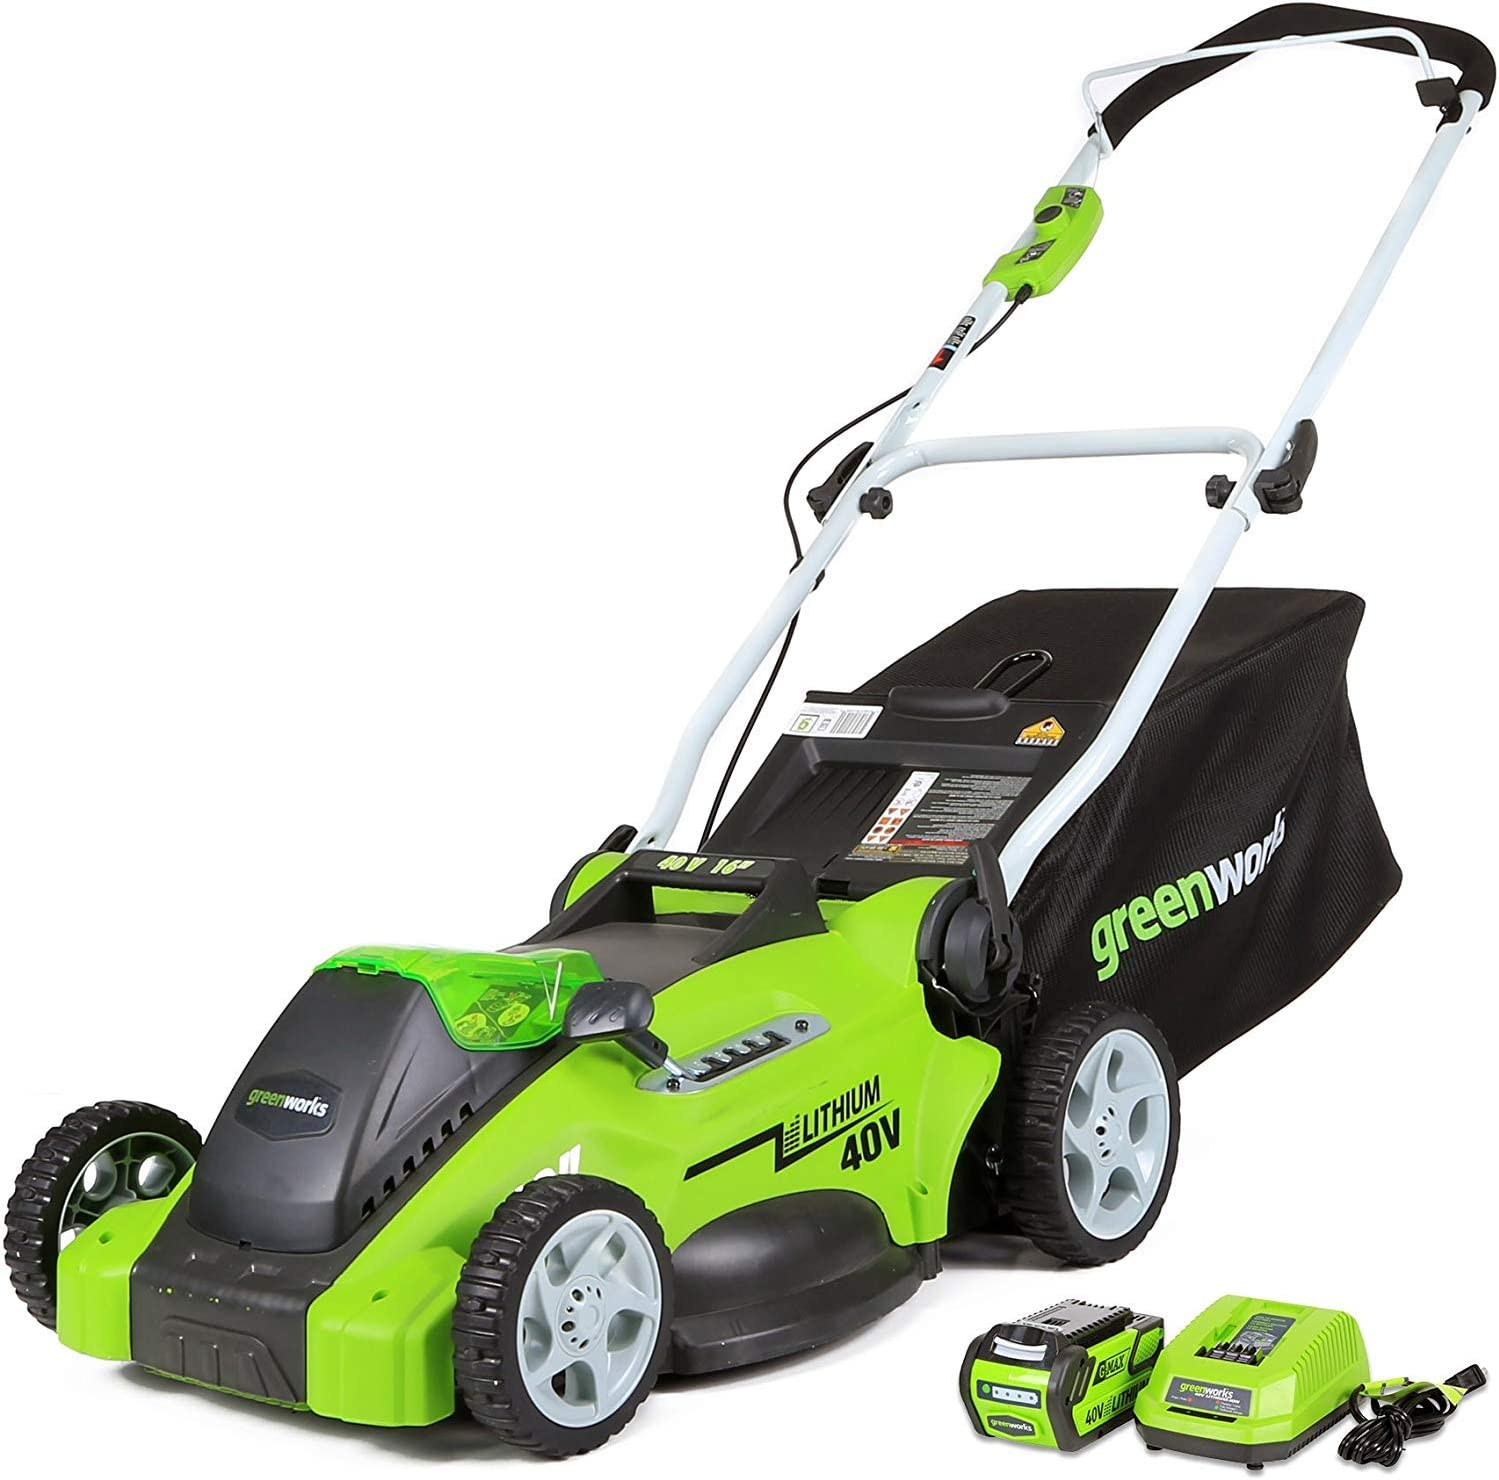 Greenworks 16In 40V